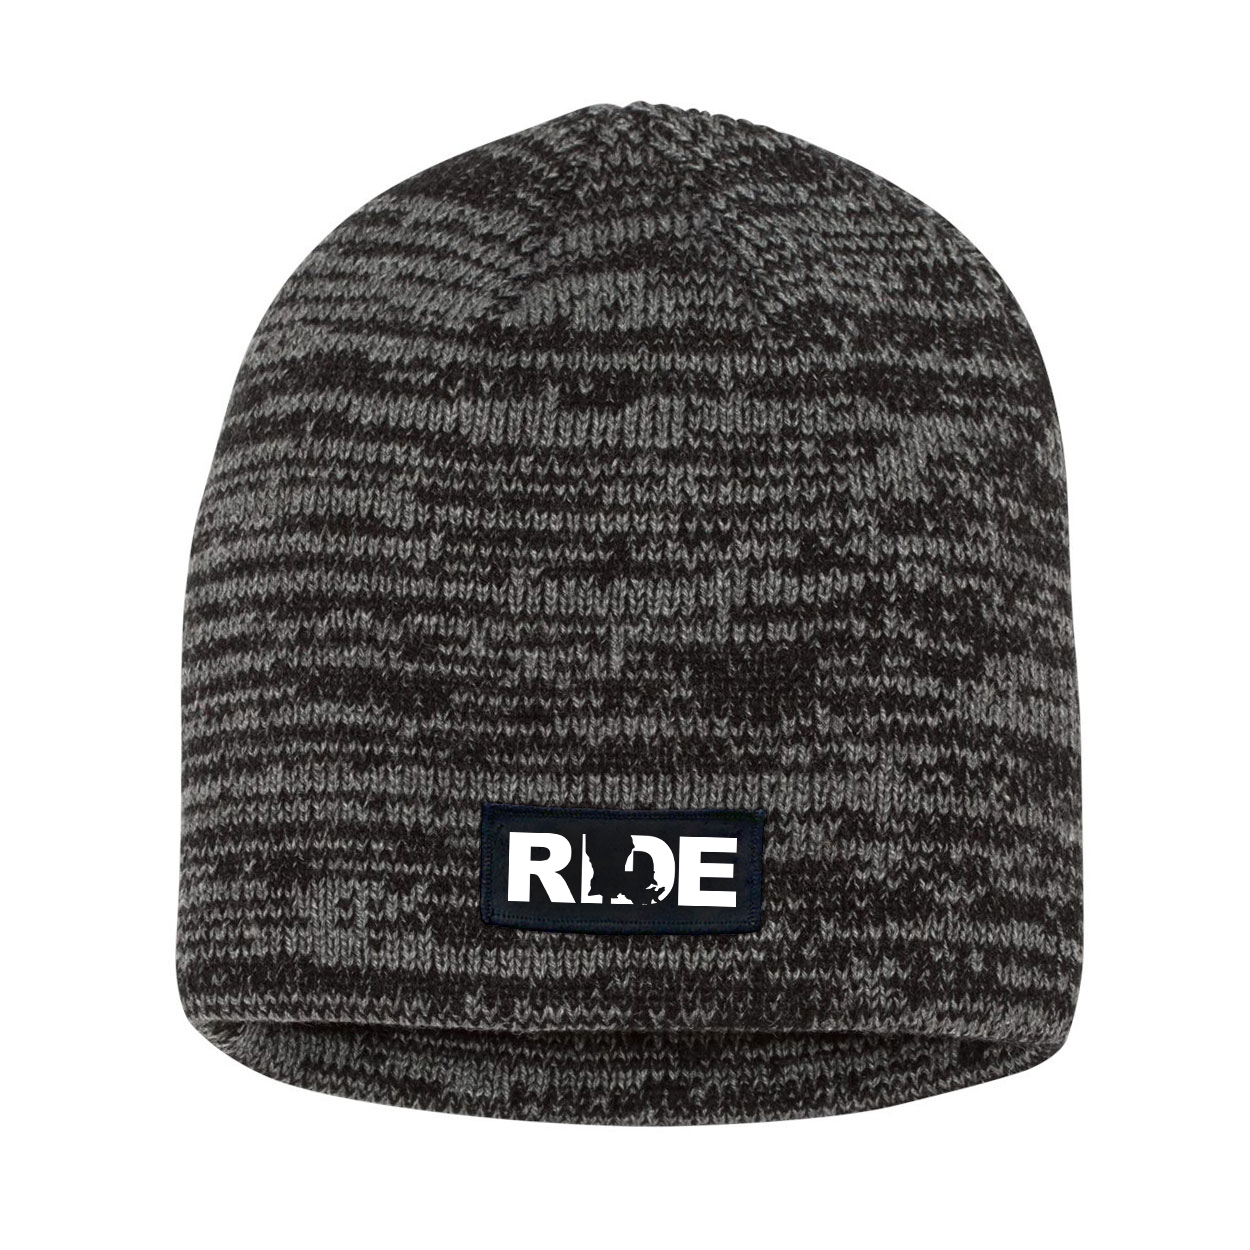 Ride Louisiana Night Out Woven Patch Skully Marled Knit Beanie Black/Gray (White Logo)